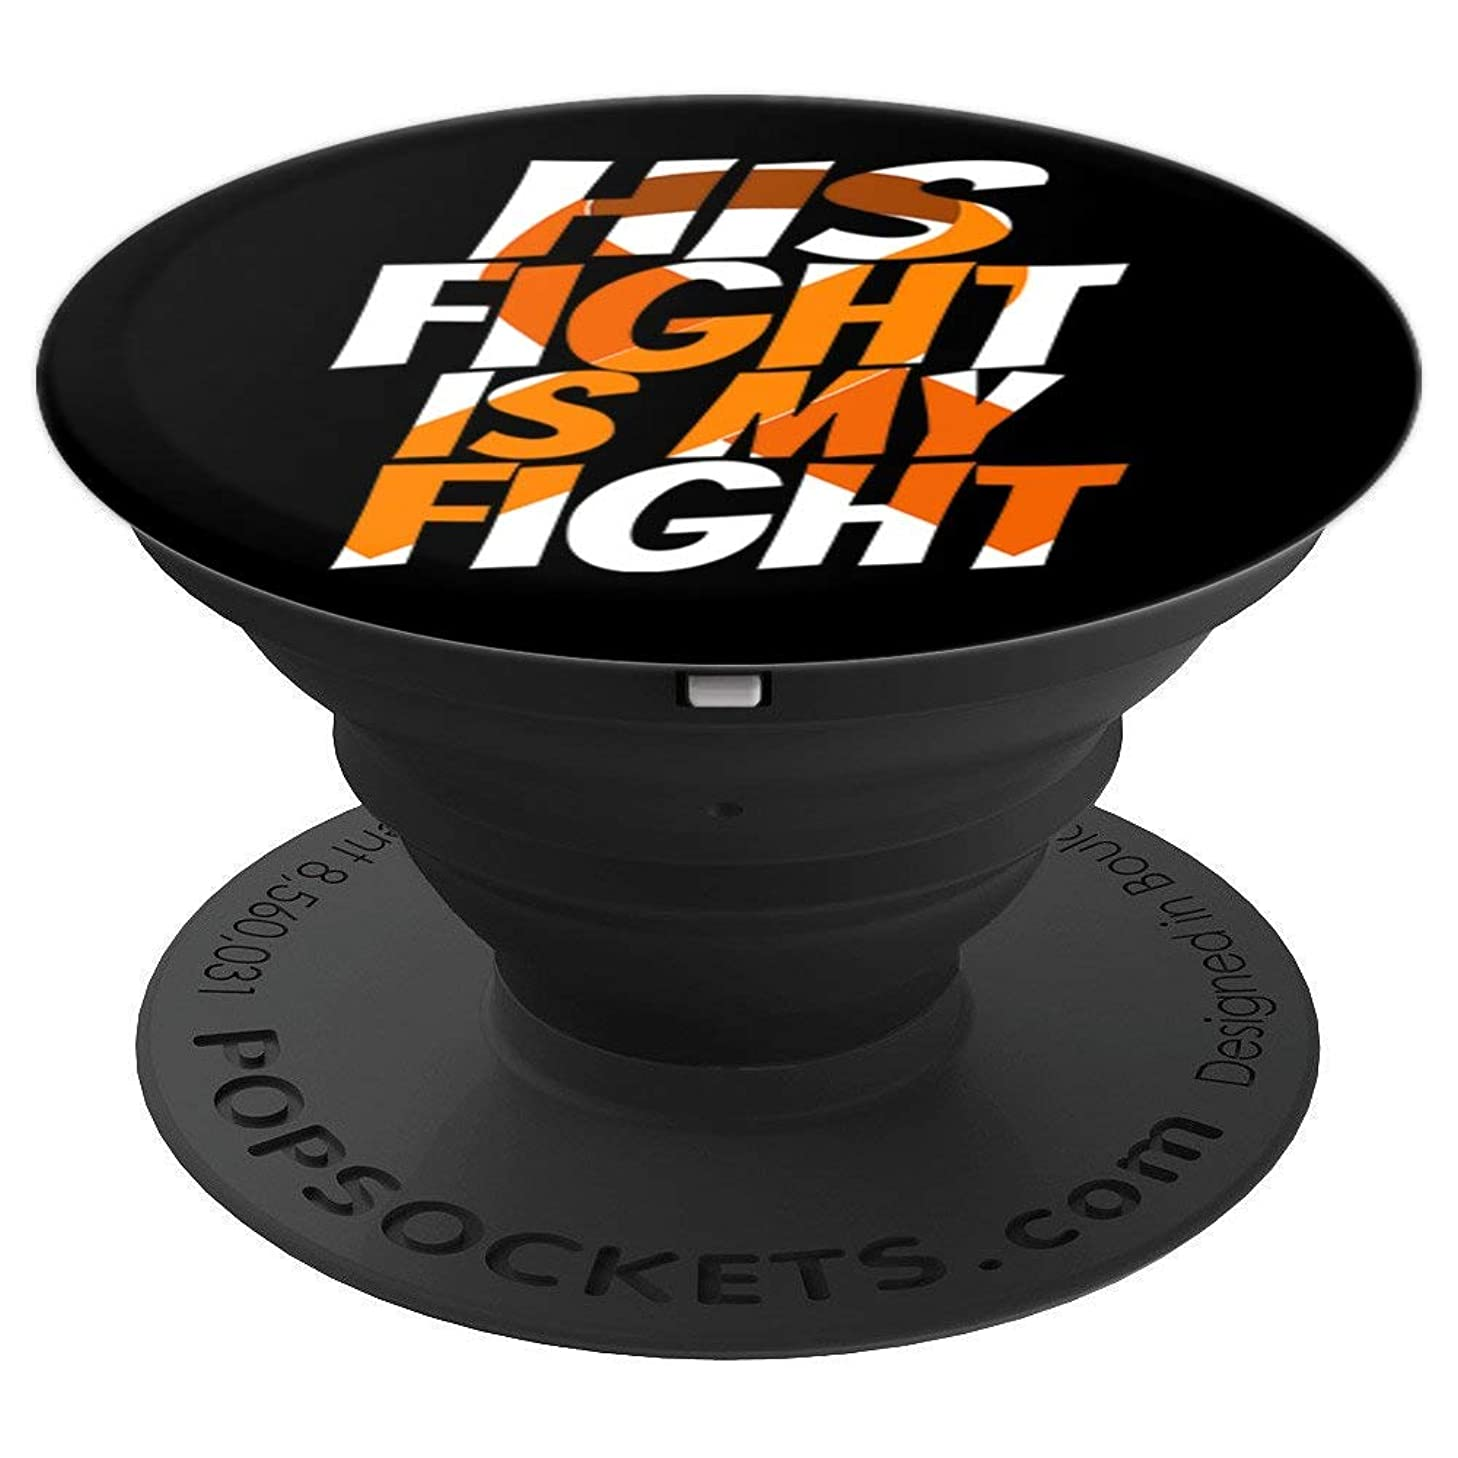 Kidney Cancer Awareness Products Orange Ribbon Products - PopSockets Grip and Stand for Phones and Tablets